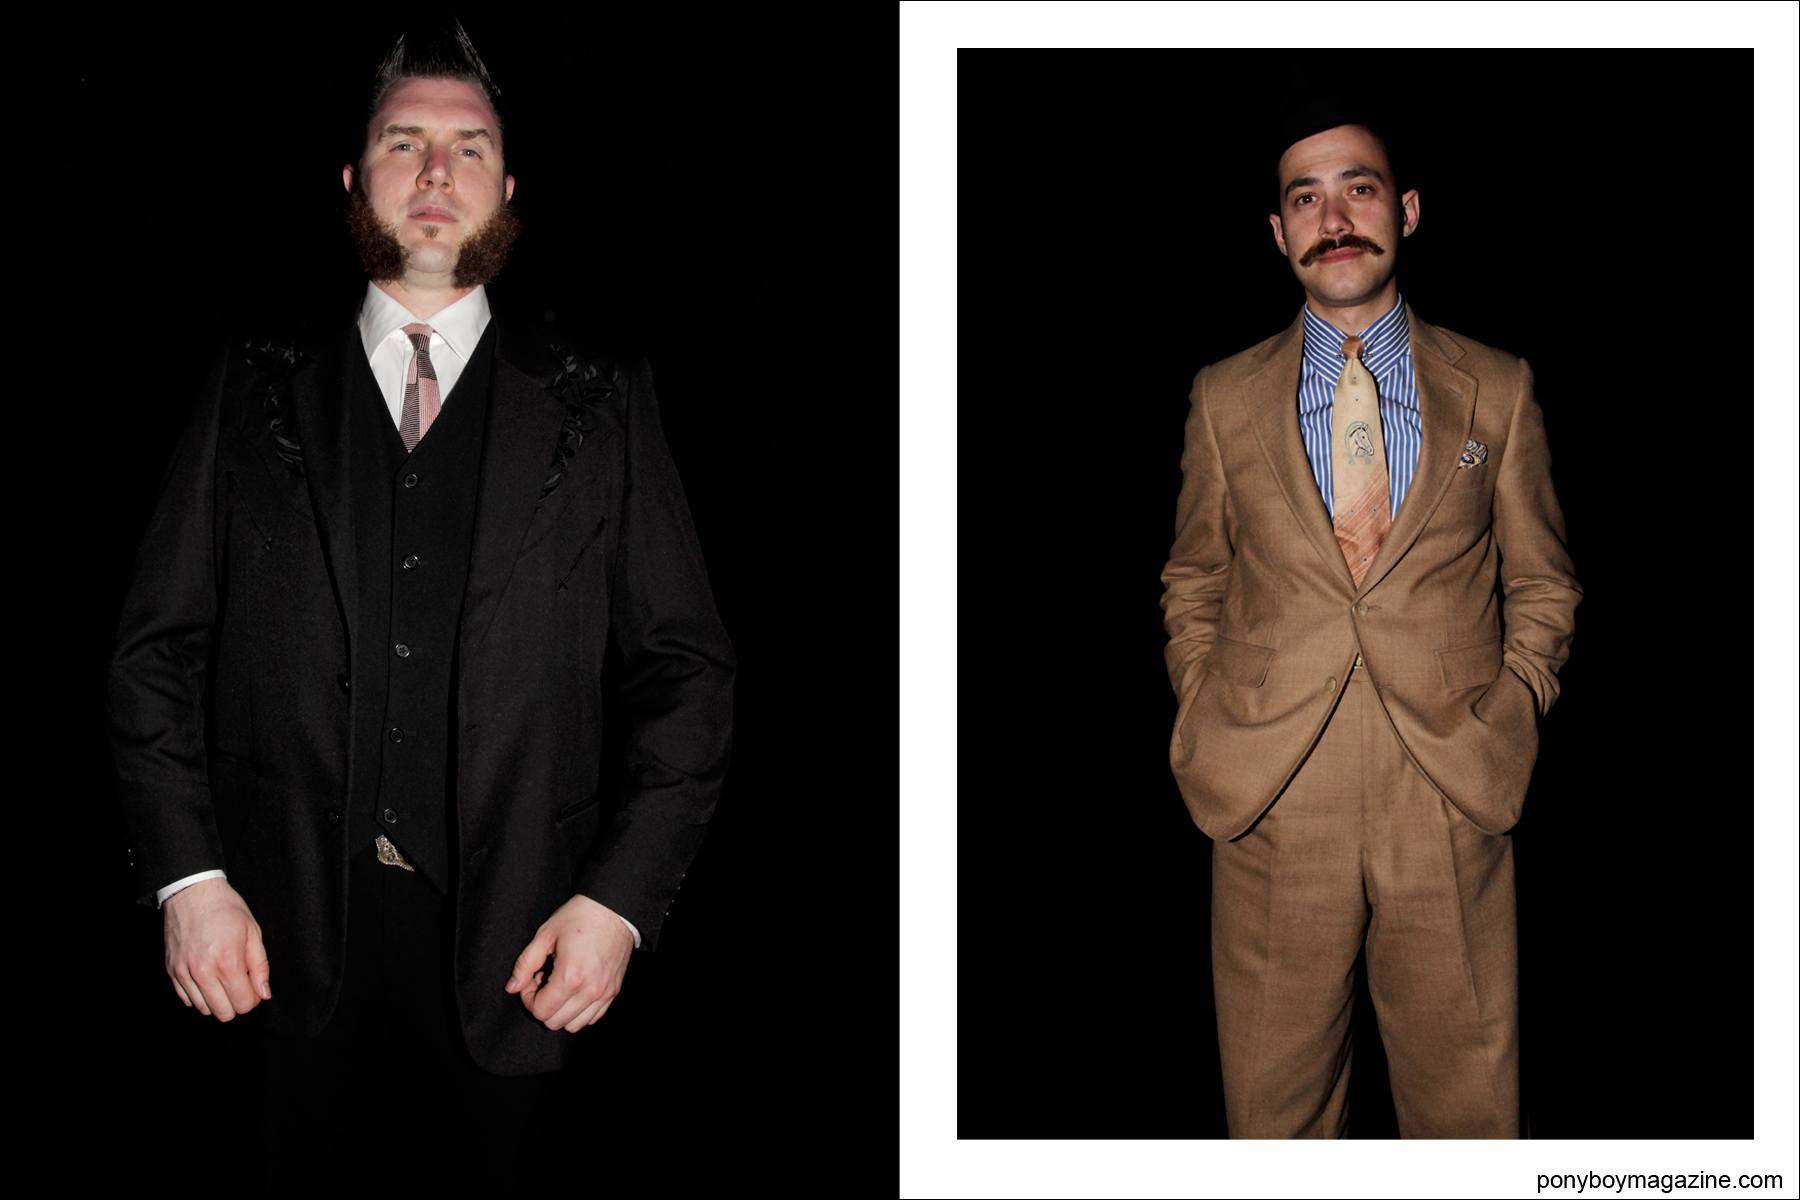 Stylish men's vintage suits photographed by Ponyboy Magazine photographer Alexander Thompson at the Viva Las Vegas weekender.